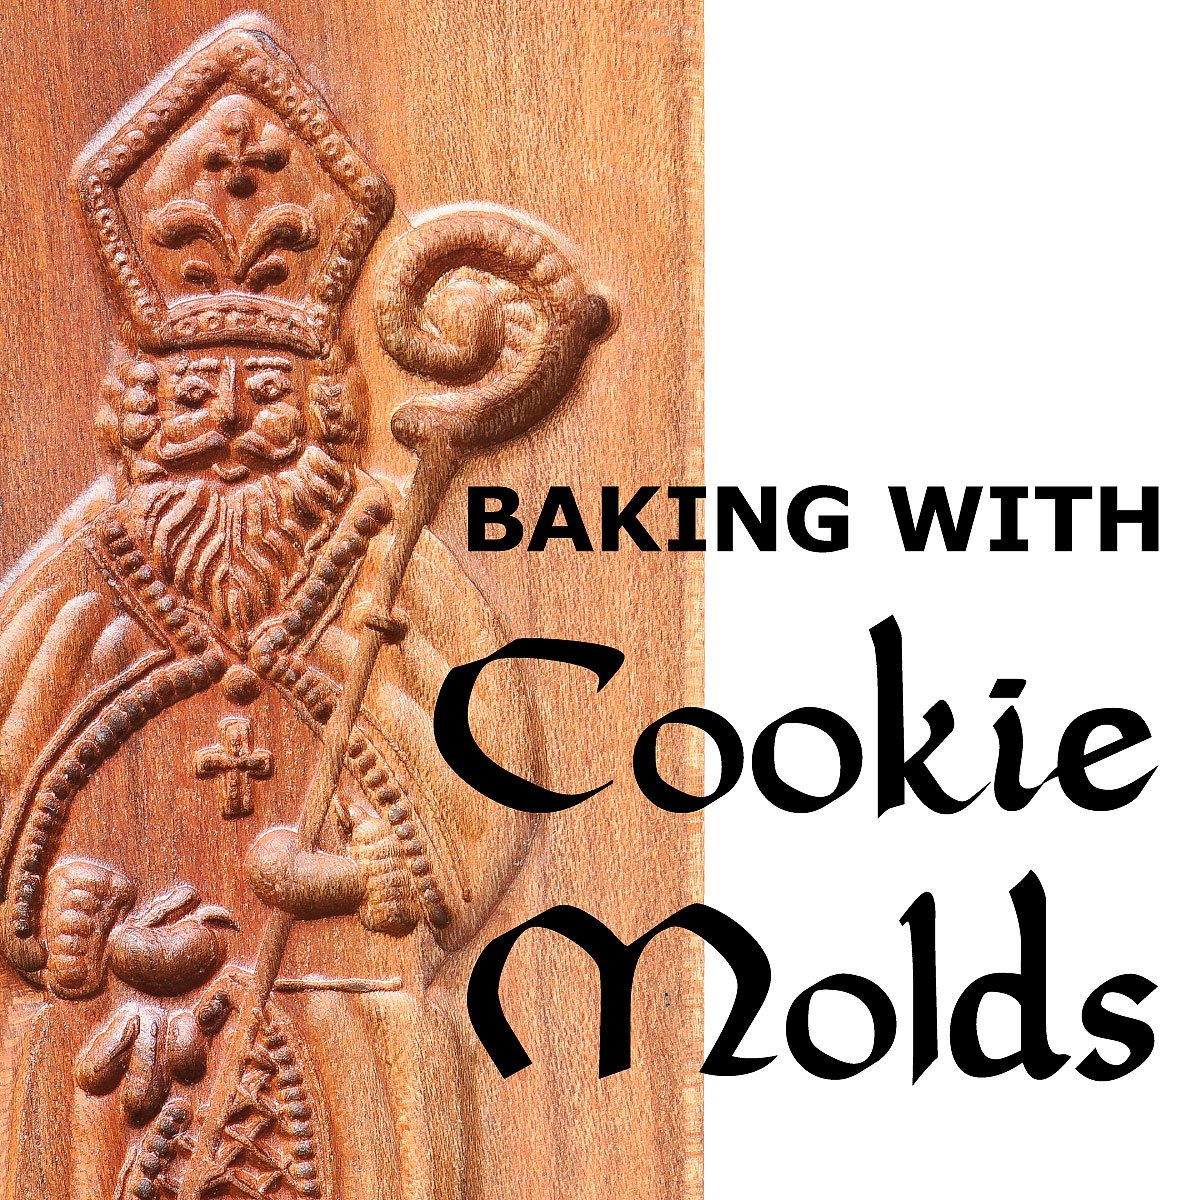 Baking Cookie Molds Handcrafted Christmas product image